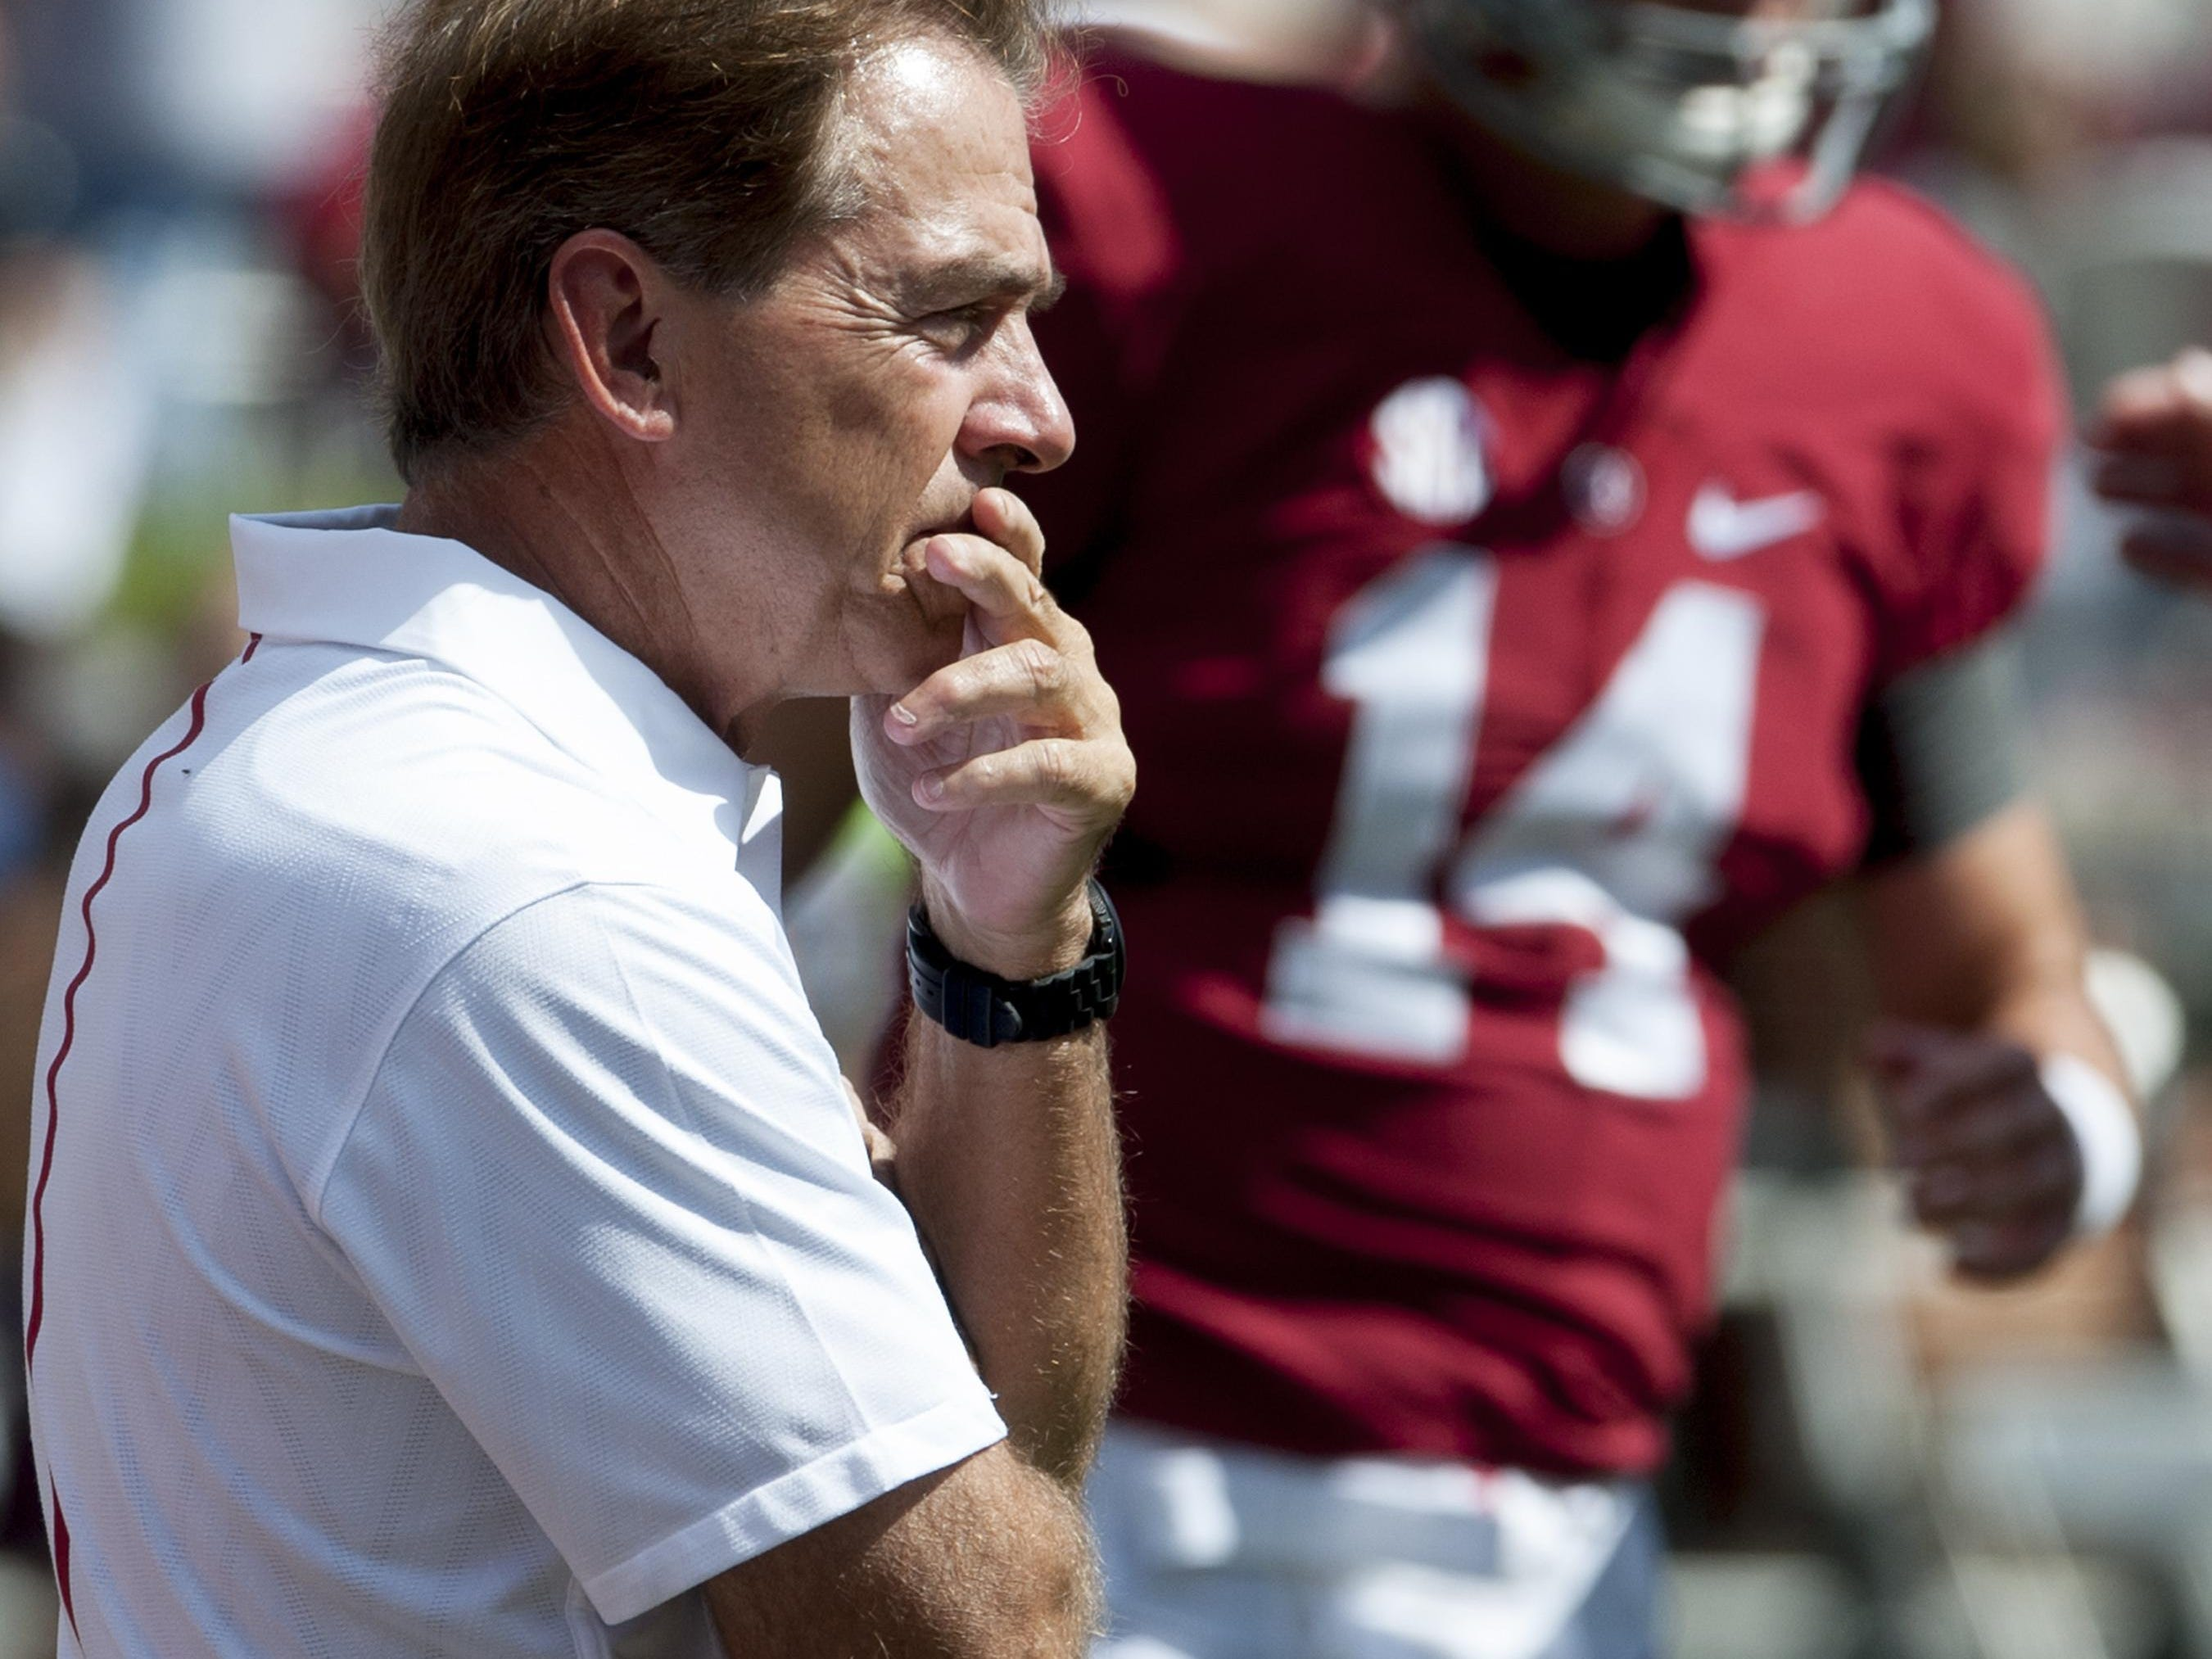 Alabama Coach Nick Saban before the Middle Tennessee game at Bryant-Denny Stadium in Tuscaloosa, Ala. on Saturday September 12, 2015. (Mickey Welsh / Montgomery Advertiser)